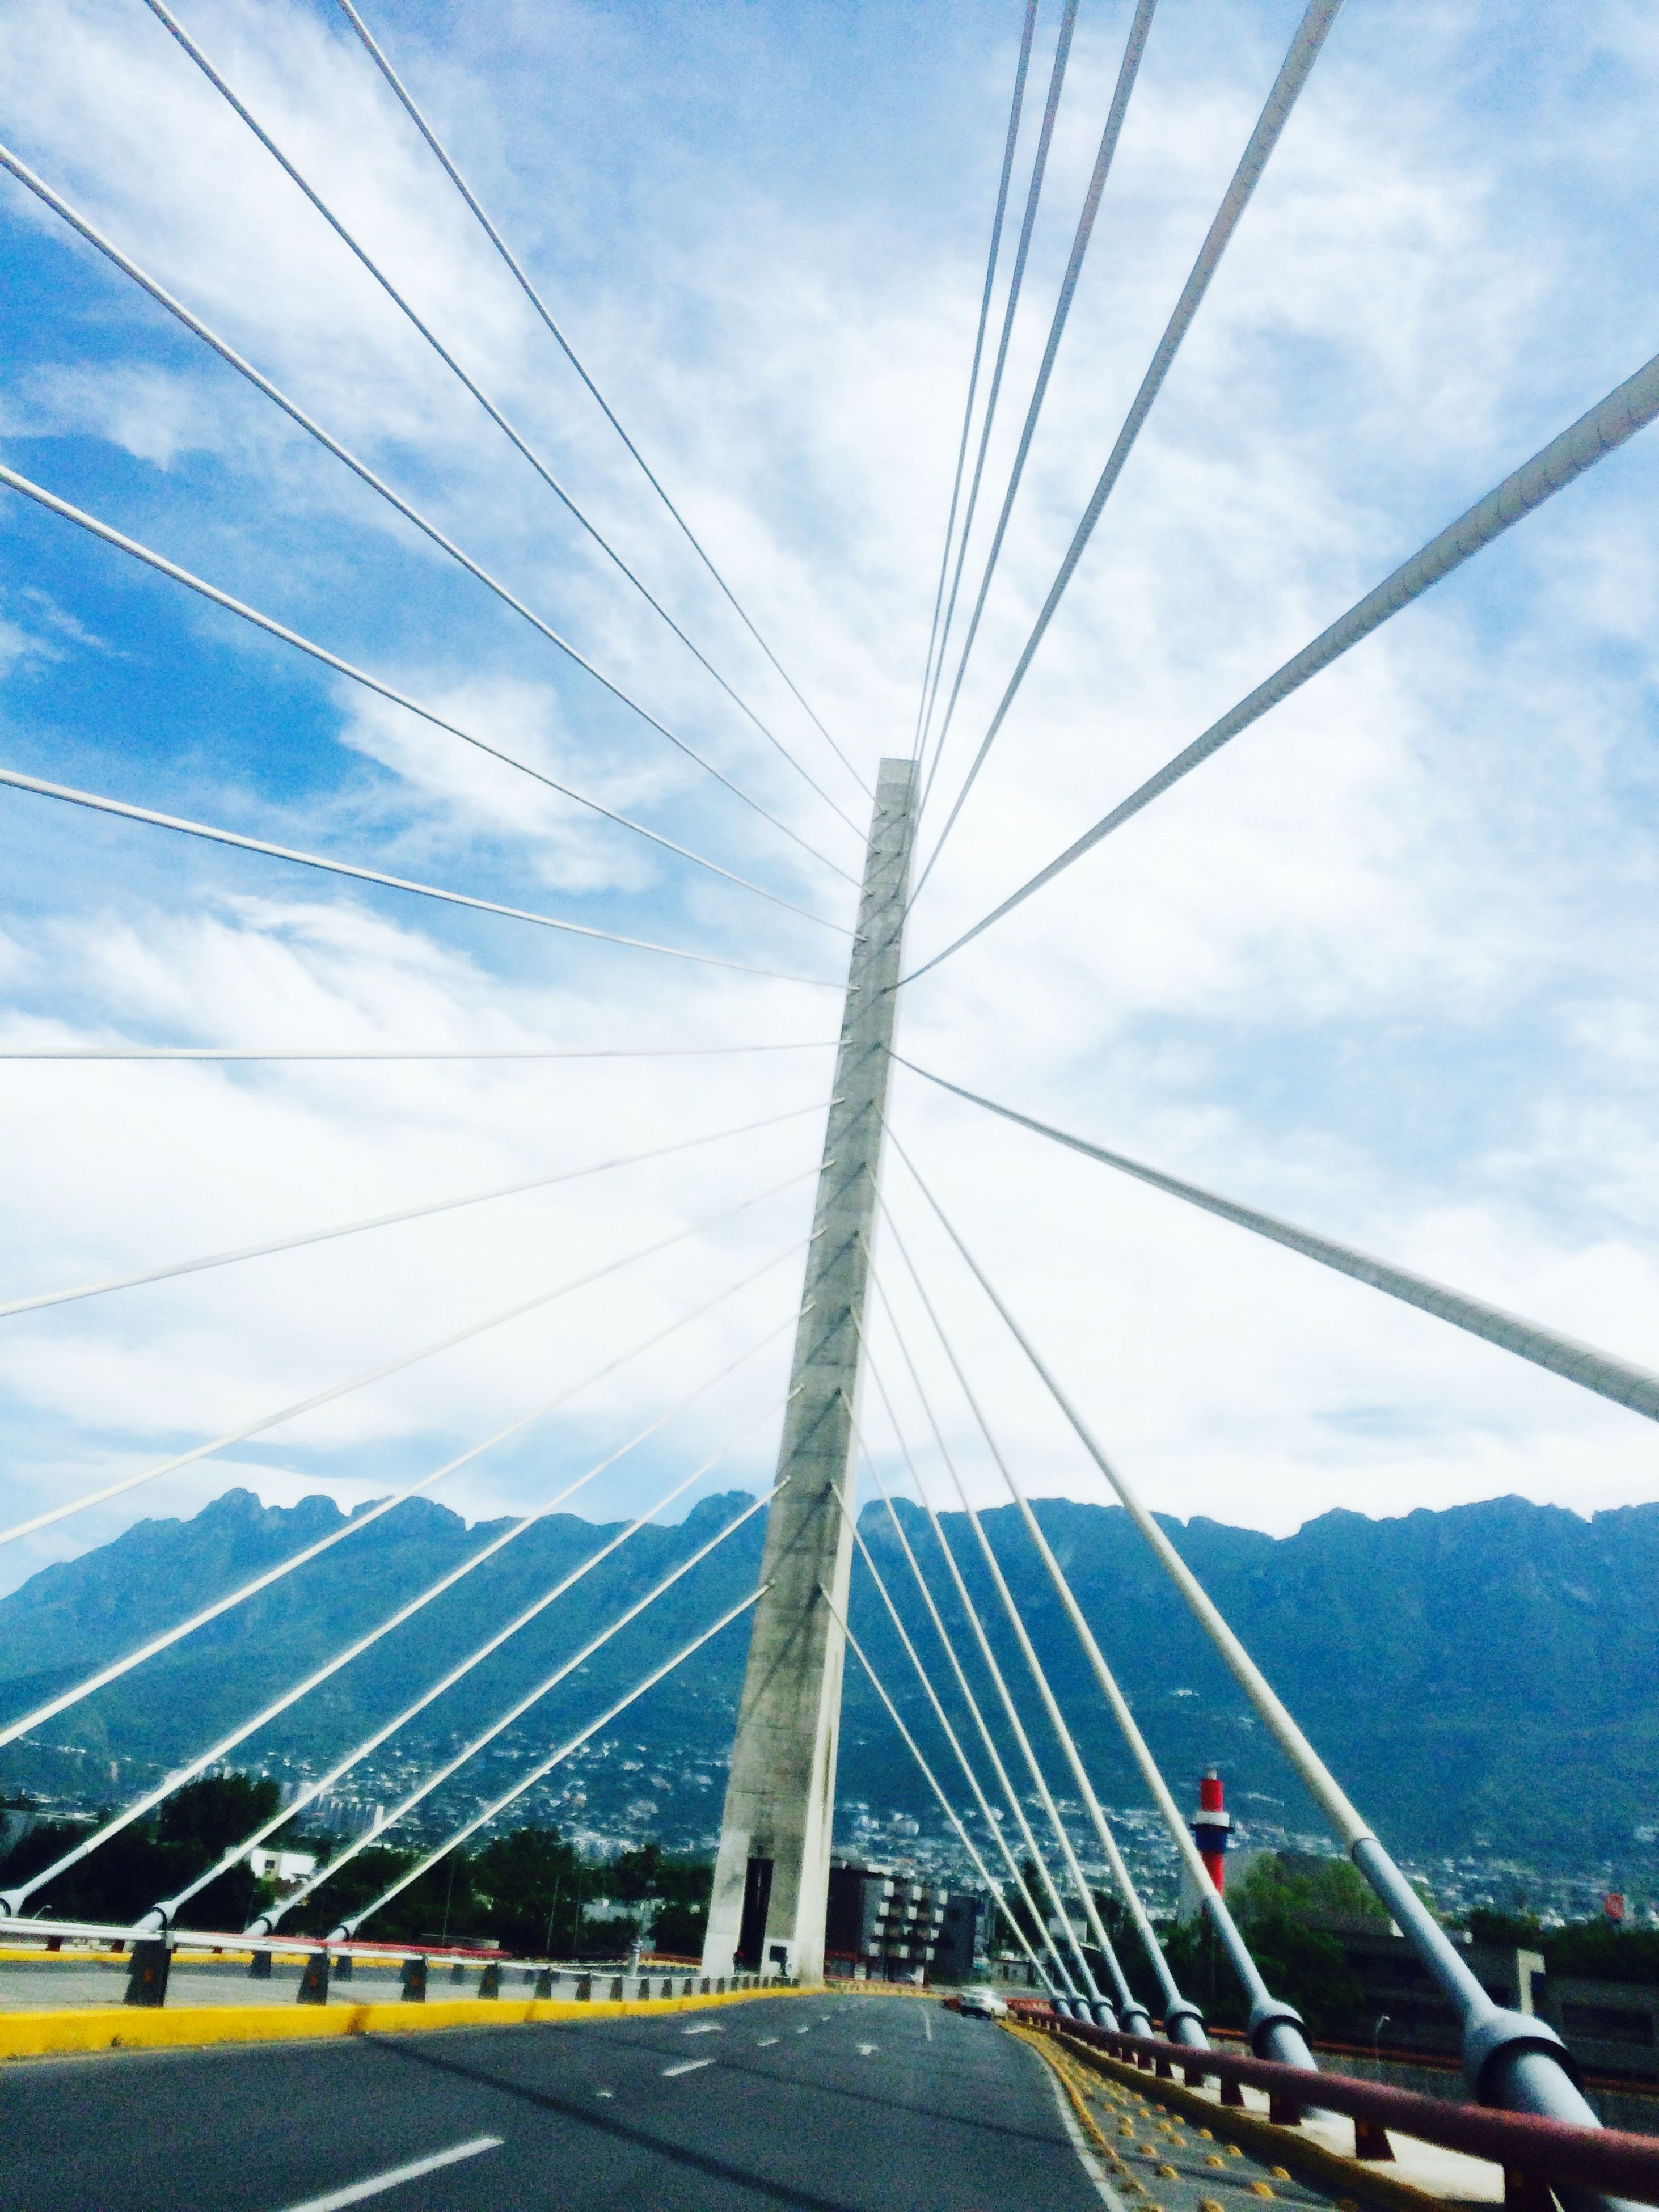 connection, transportation, sky, cable, power line, electricity pylon, bridge - man made structure, cloud - sky, built structure, road, engineering, architecture, suspension bridge, the way forward, cloud, blue, power supply, electricity, low angle view, cable-stayed bridge